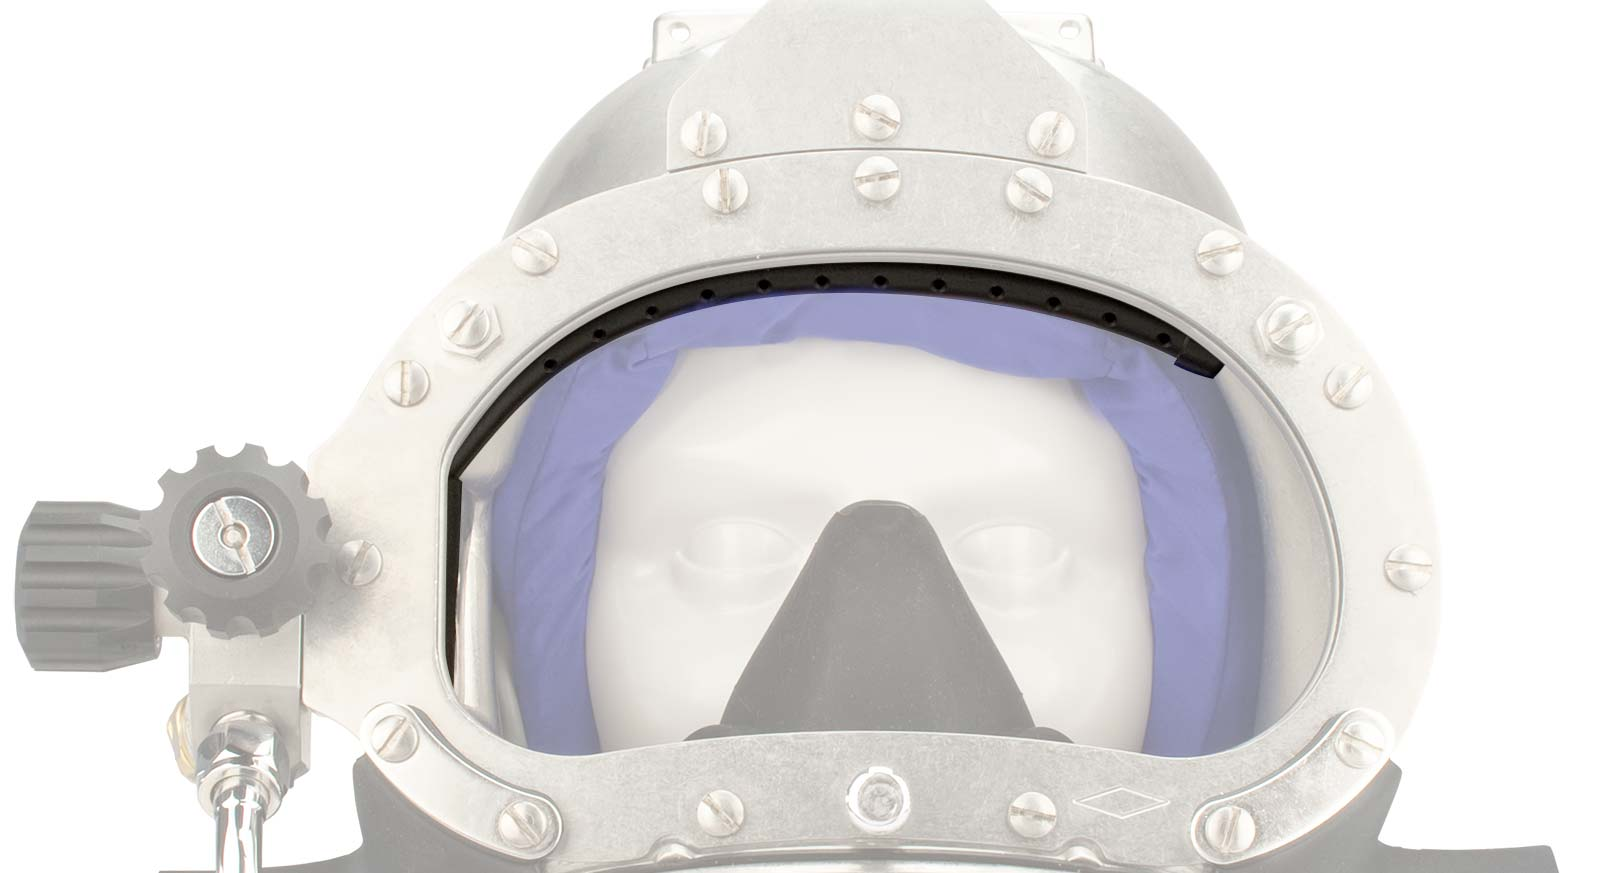 Air Train Stainless Steel Helmets